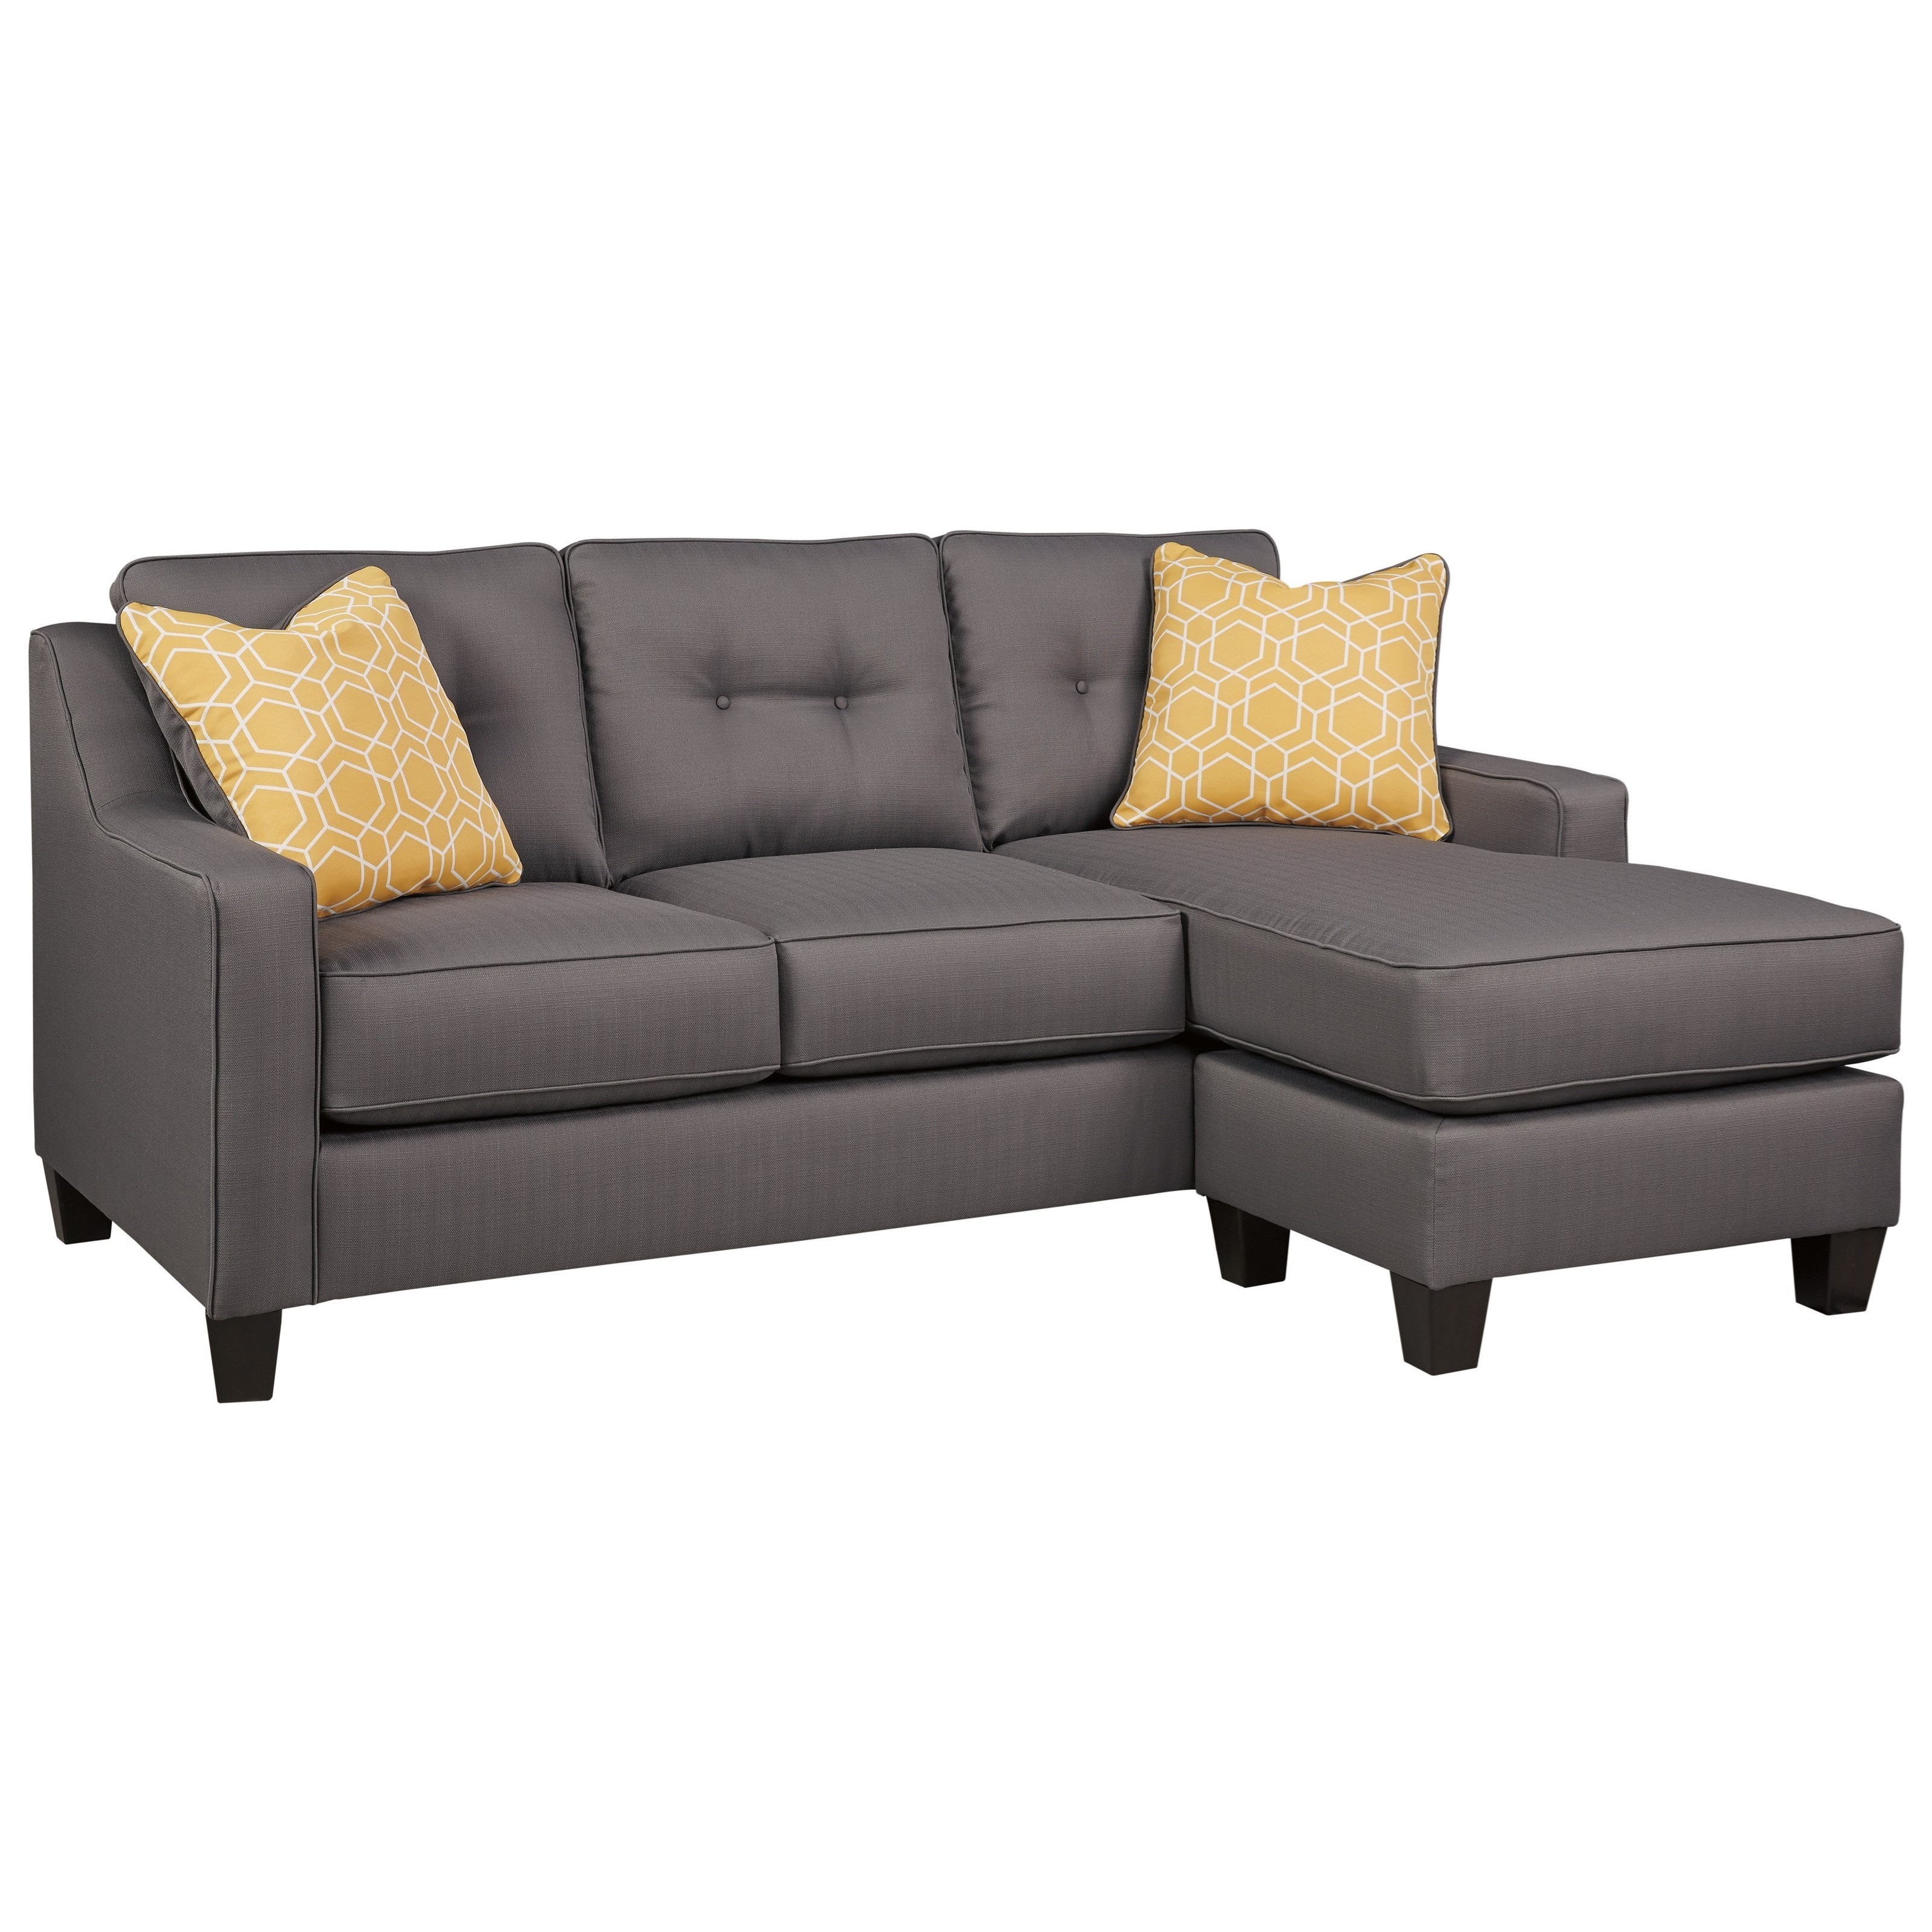 Beau JB King Adele Contemporary Sofa Chaise In Performance Fabric